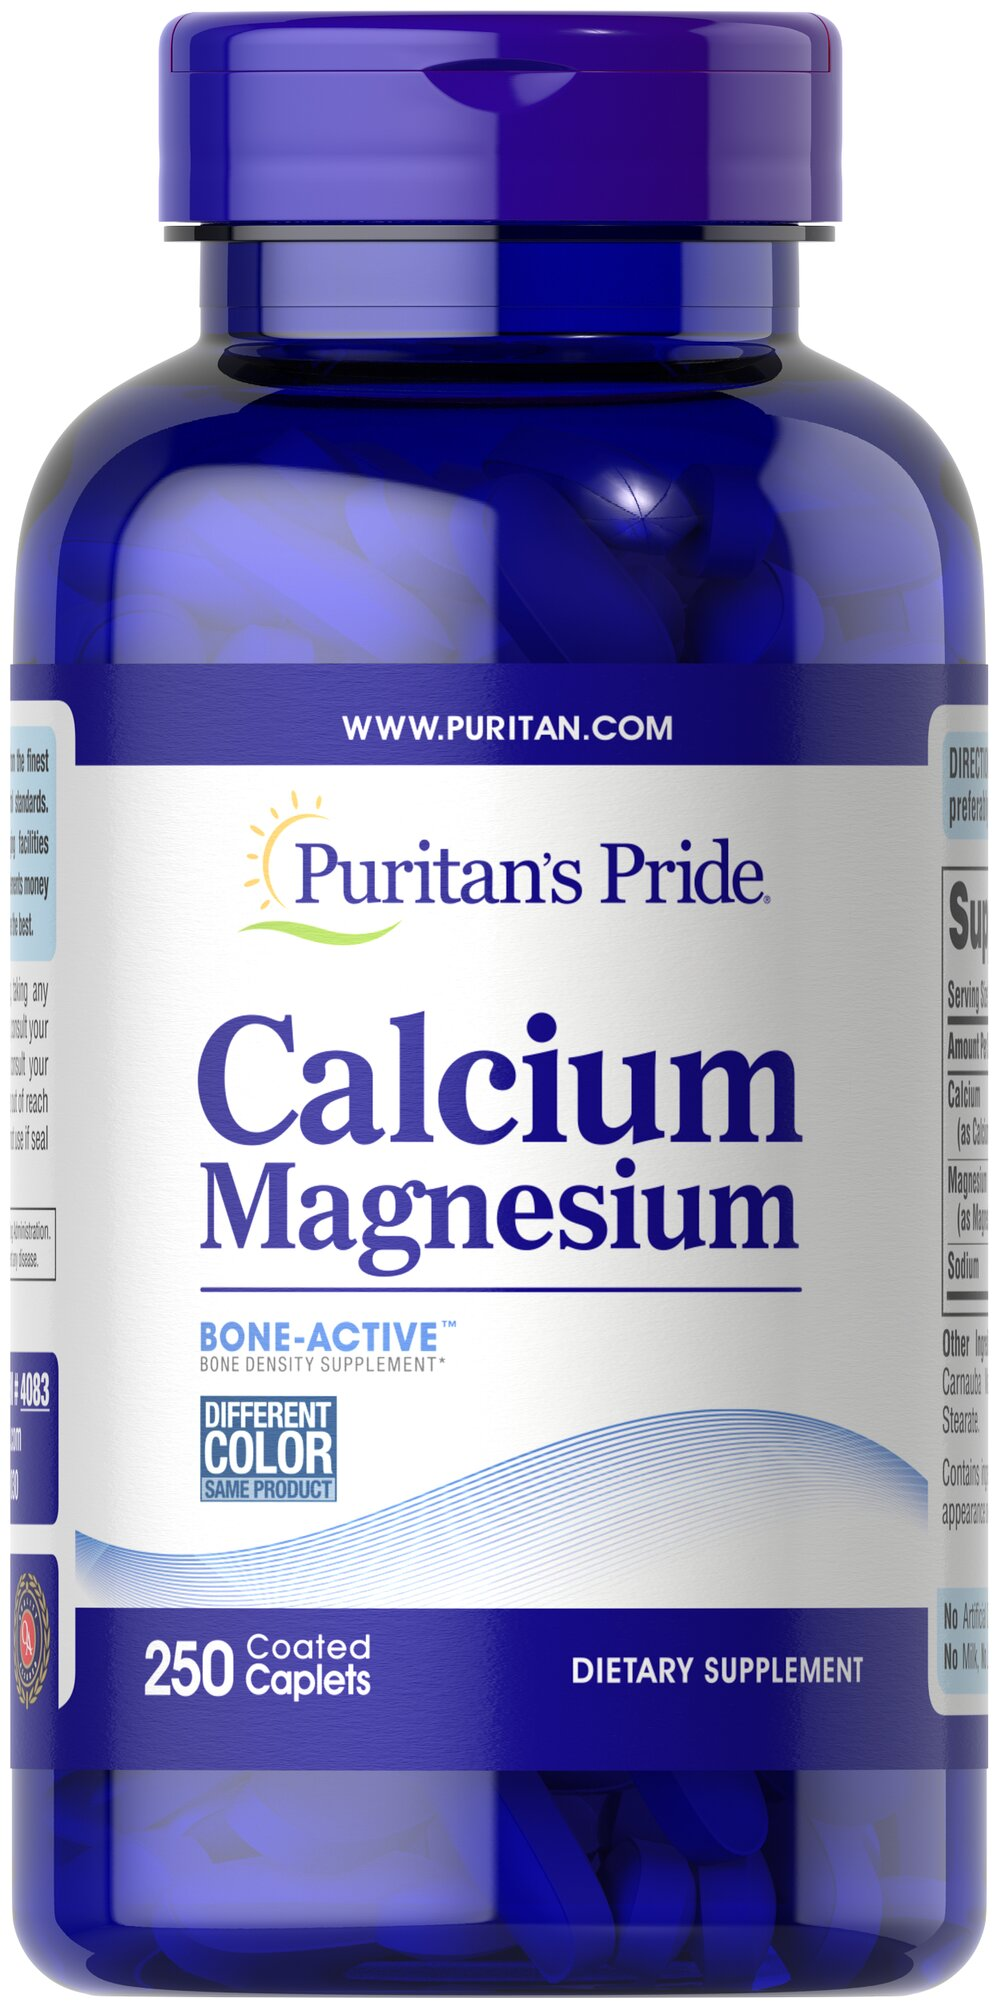 Calcium Magnesium Chelated <p>Looking for extra support for your bones?</p><p>Puritan's Pride offers a high quality Calcium and Magnesium supplement that delivers 500 mg Calcium and 250 mg Magnesium in a chelated form for optimal absorption.</p> 250 Caplets 500 mg/250 mg $19.99